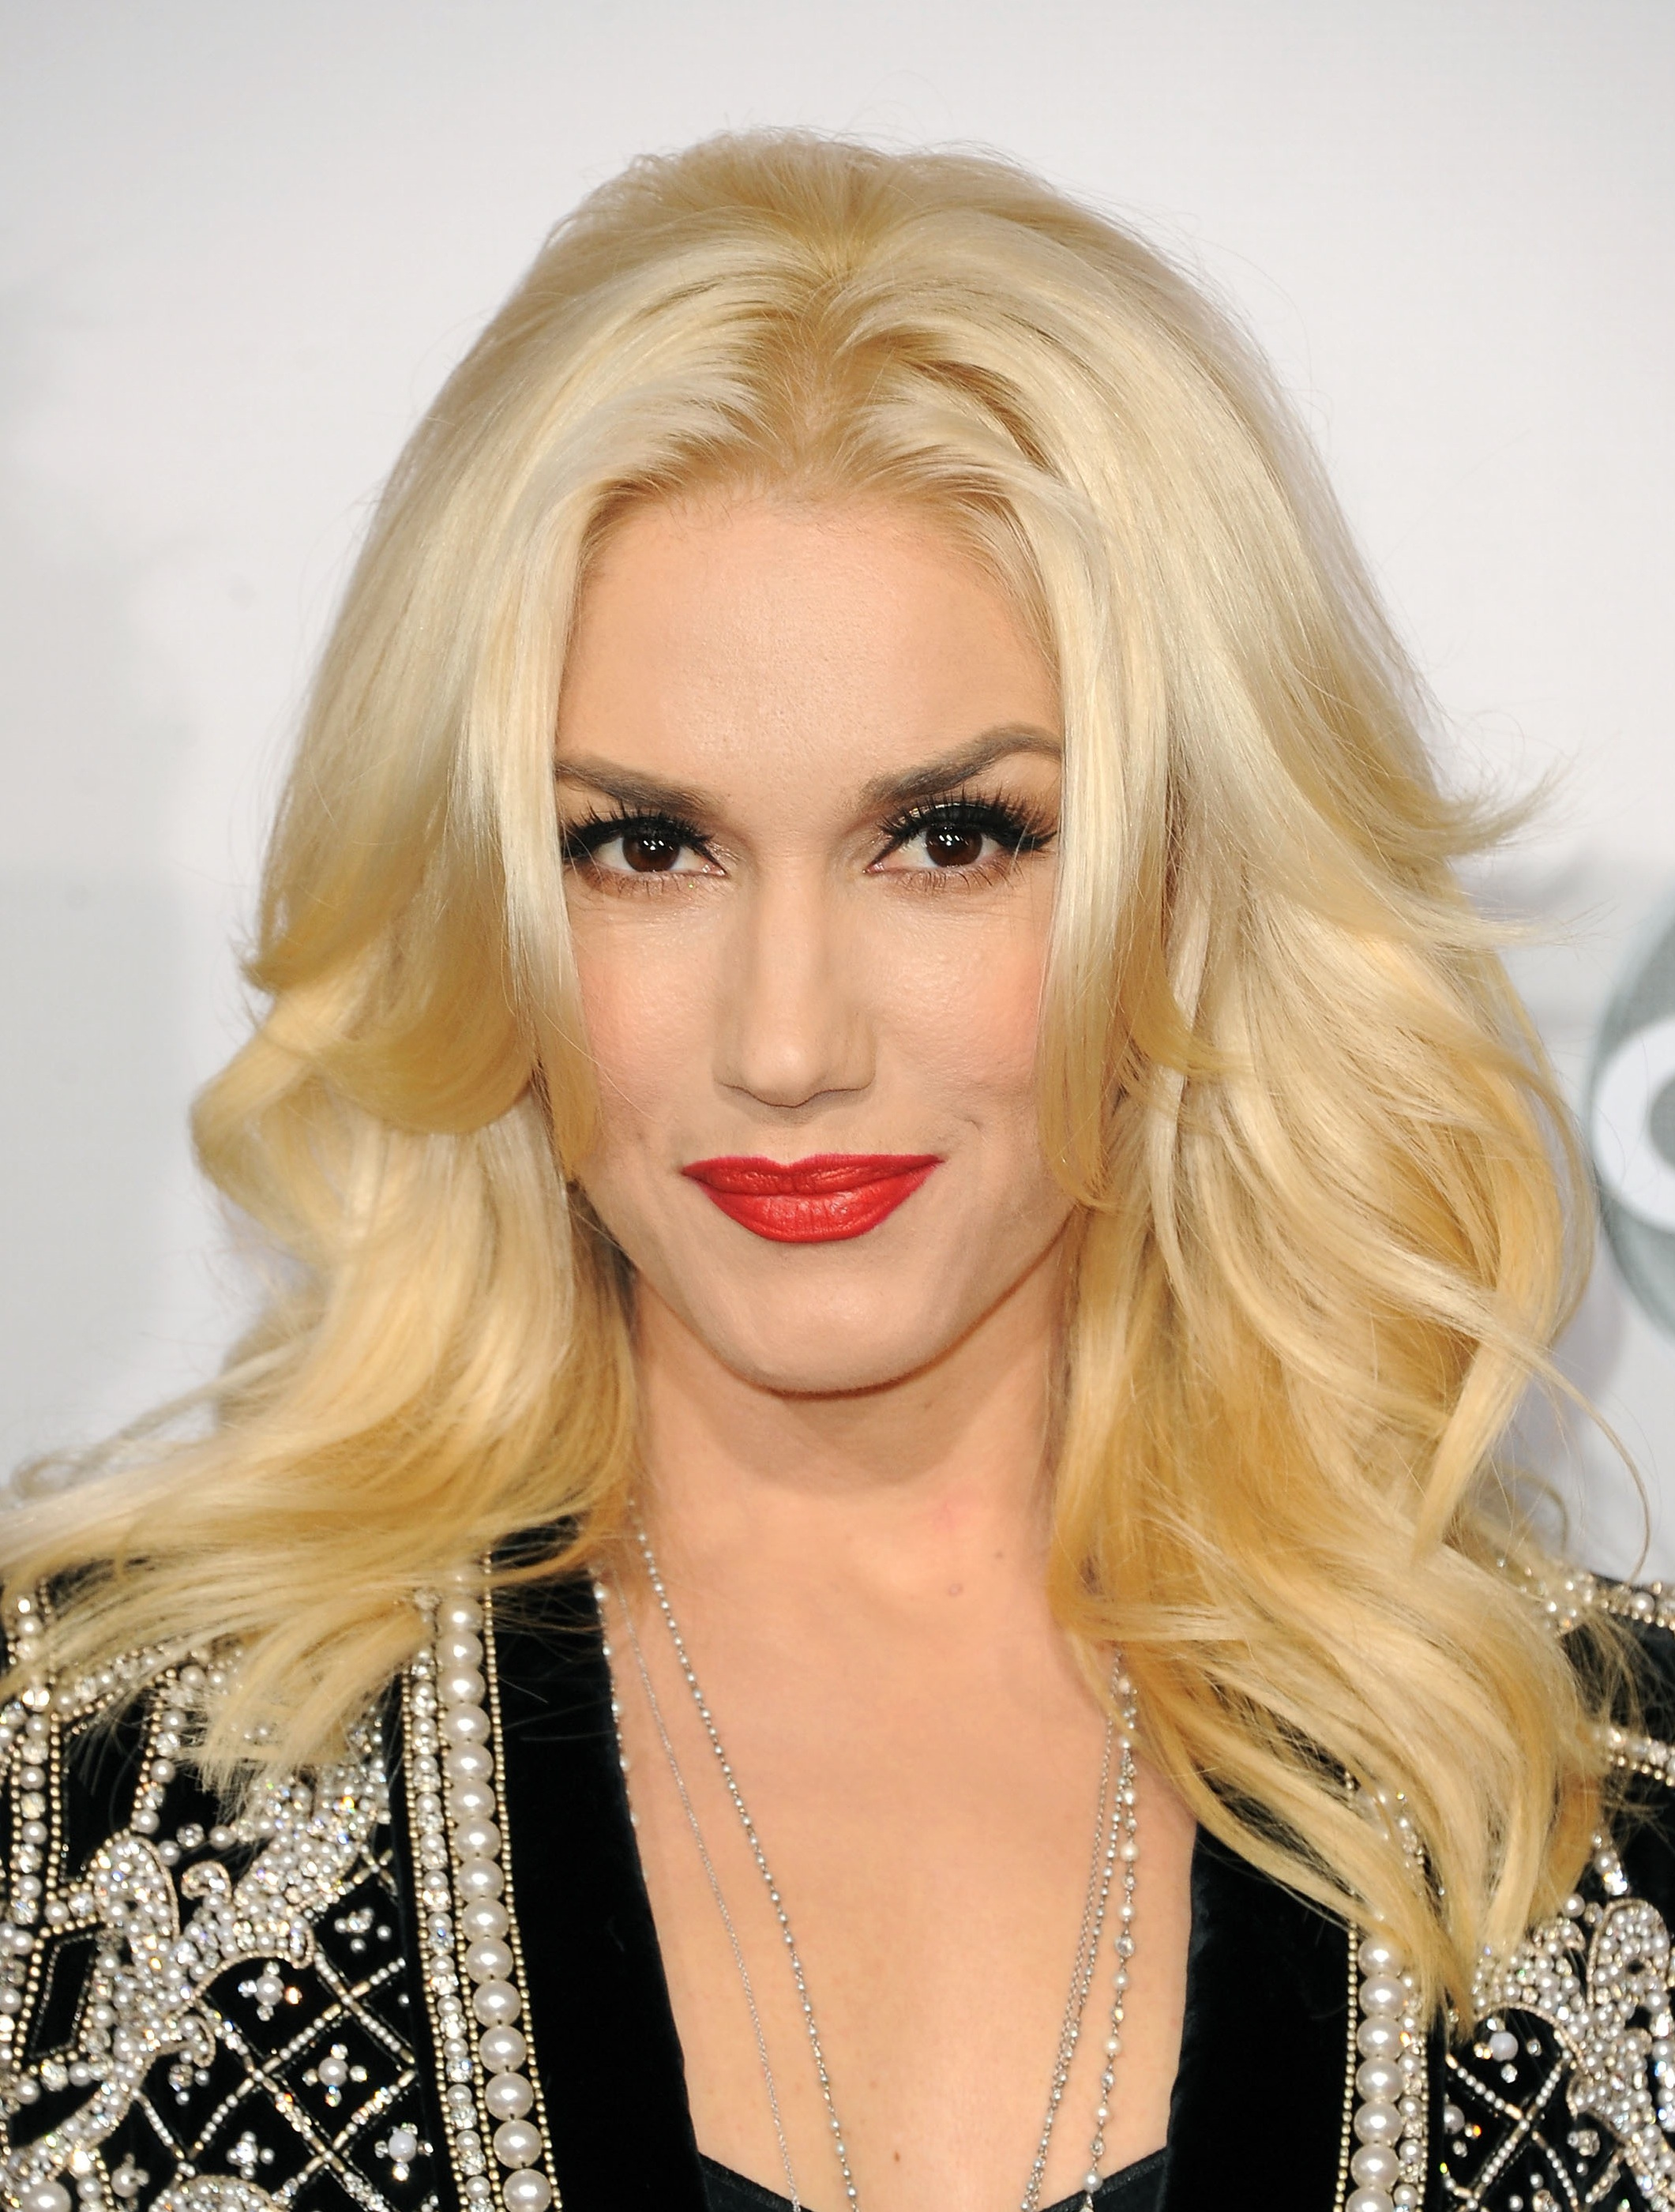 Gwen Stefani Nose Job Surgery Vip